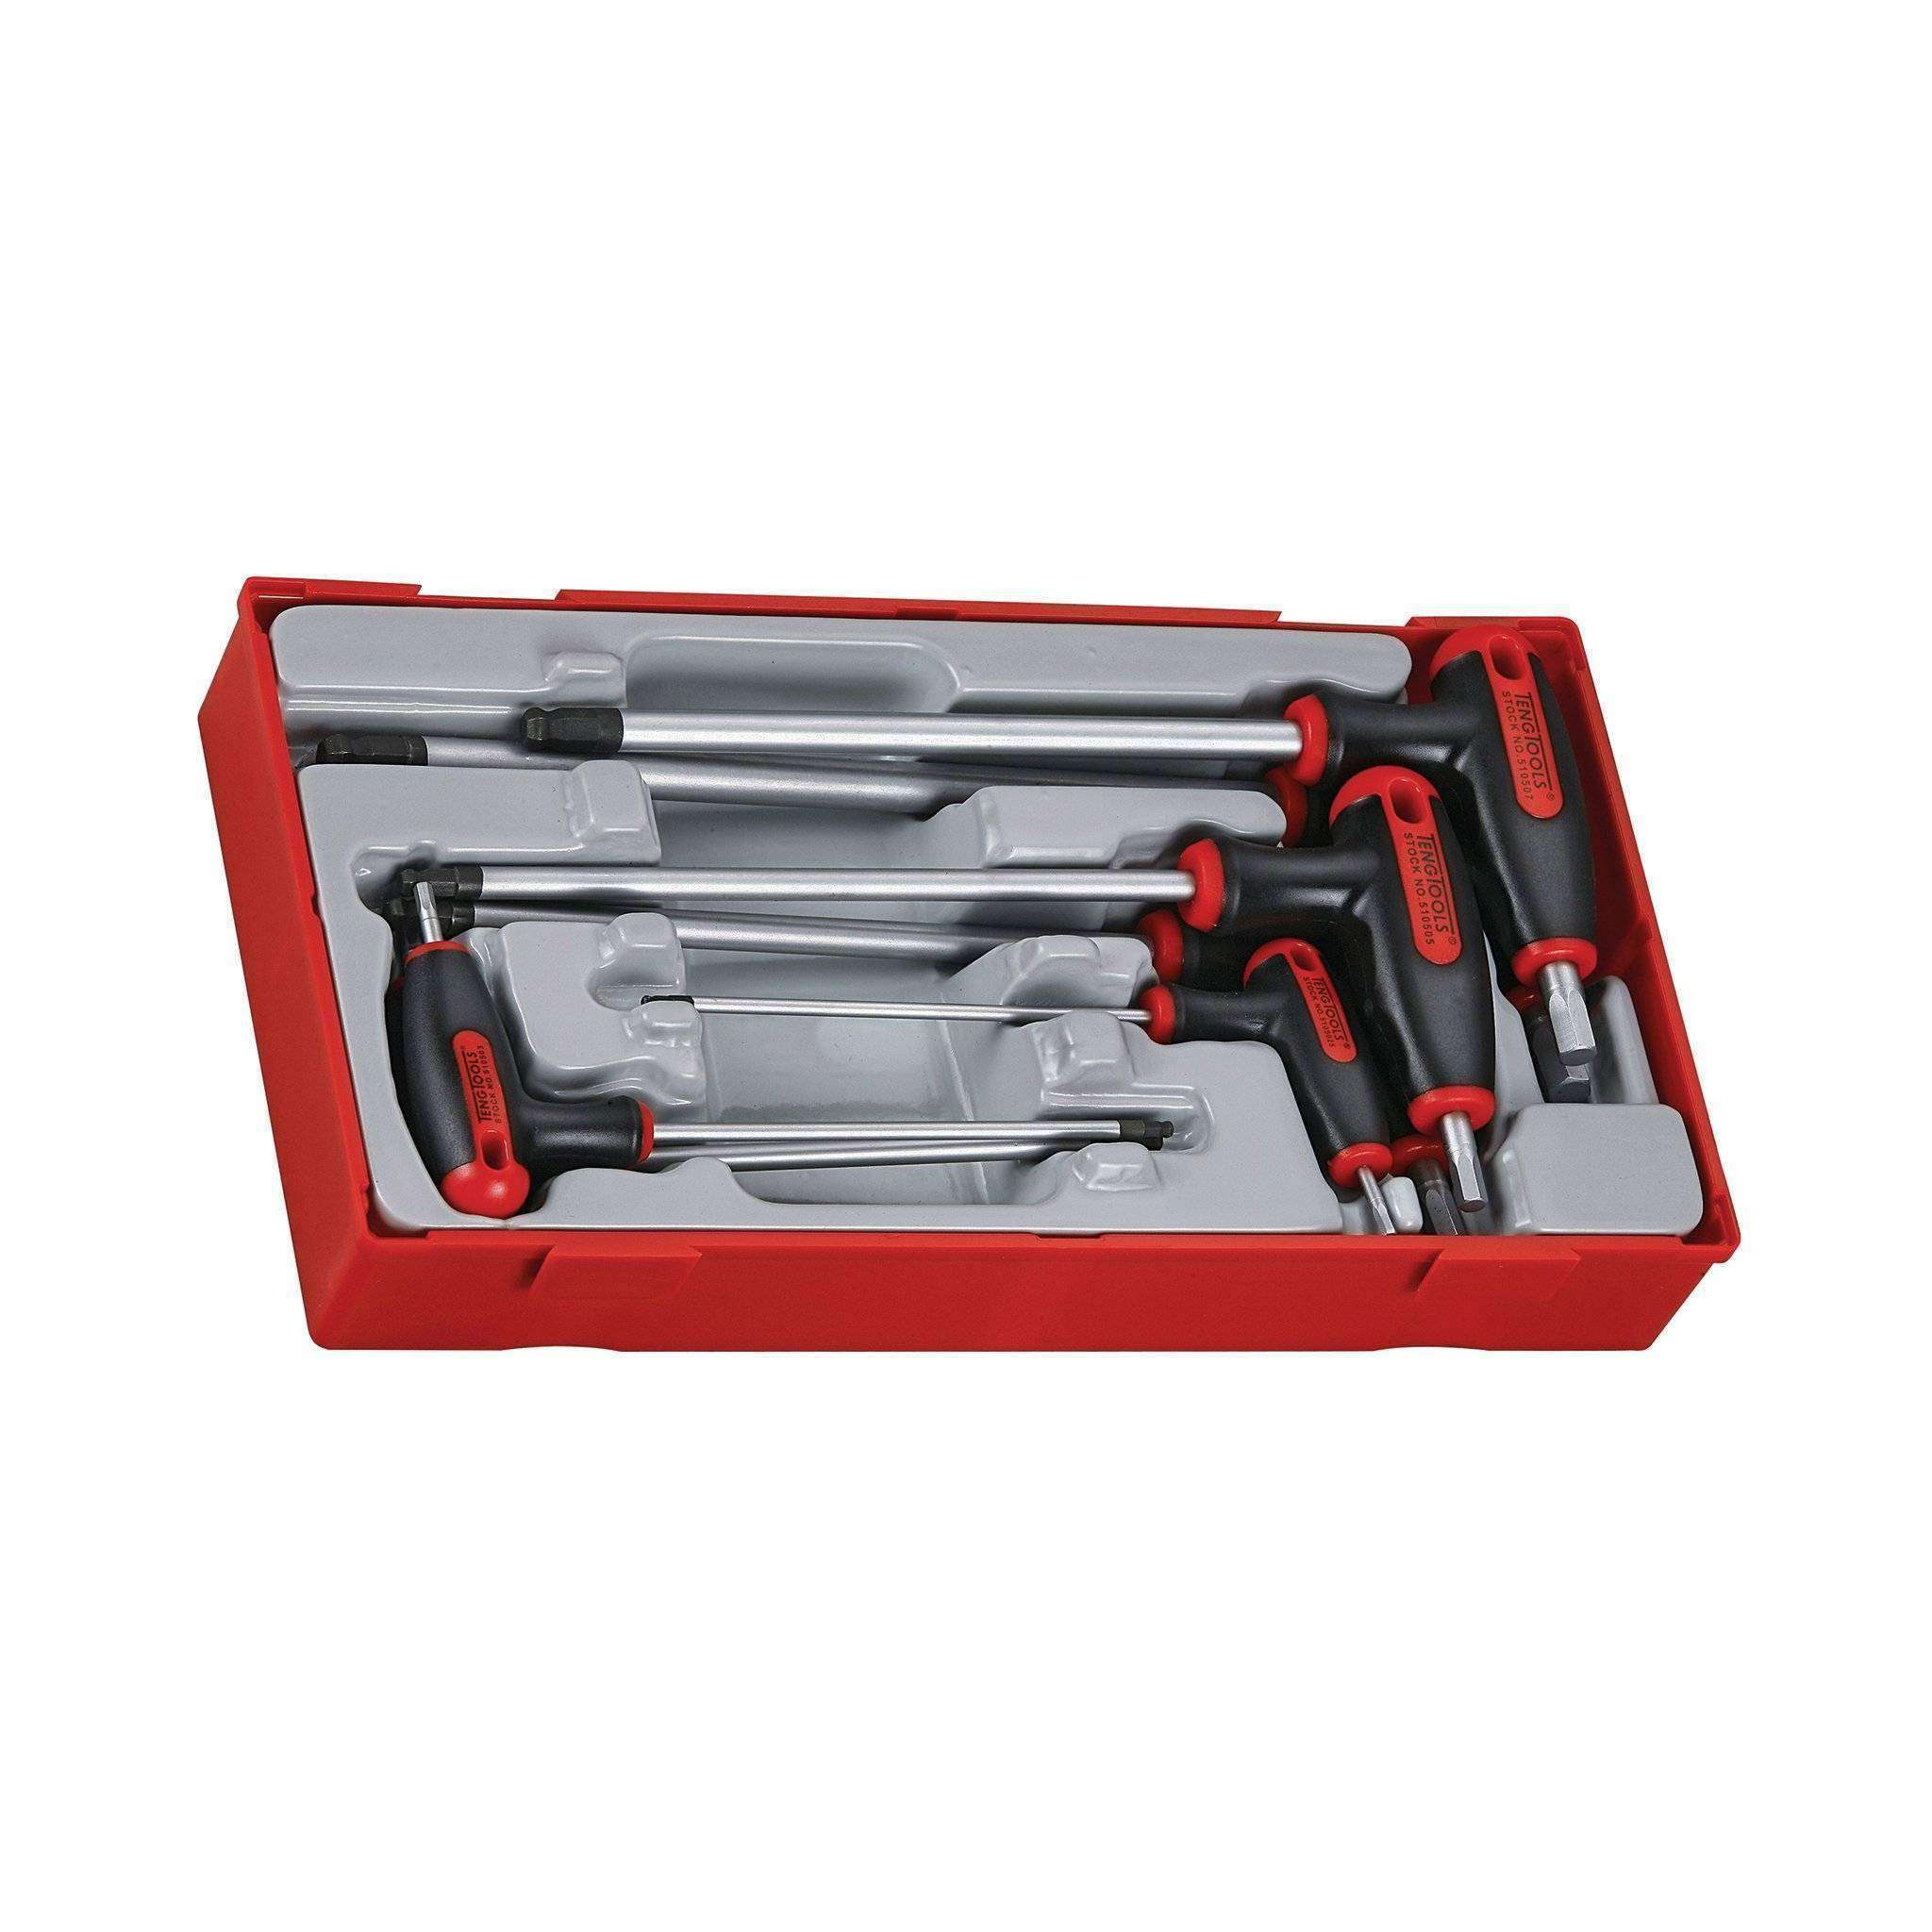 Teng Tools 7 Piece T Handle Hex Key Set - Teng Tools USA